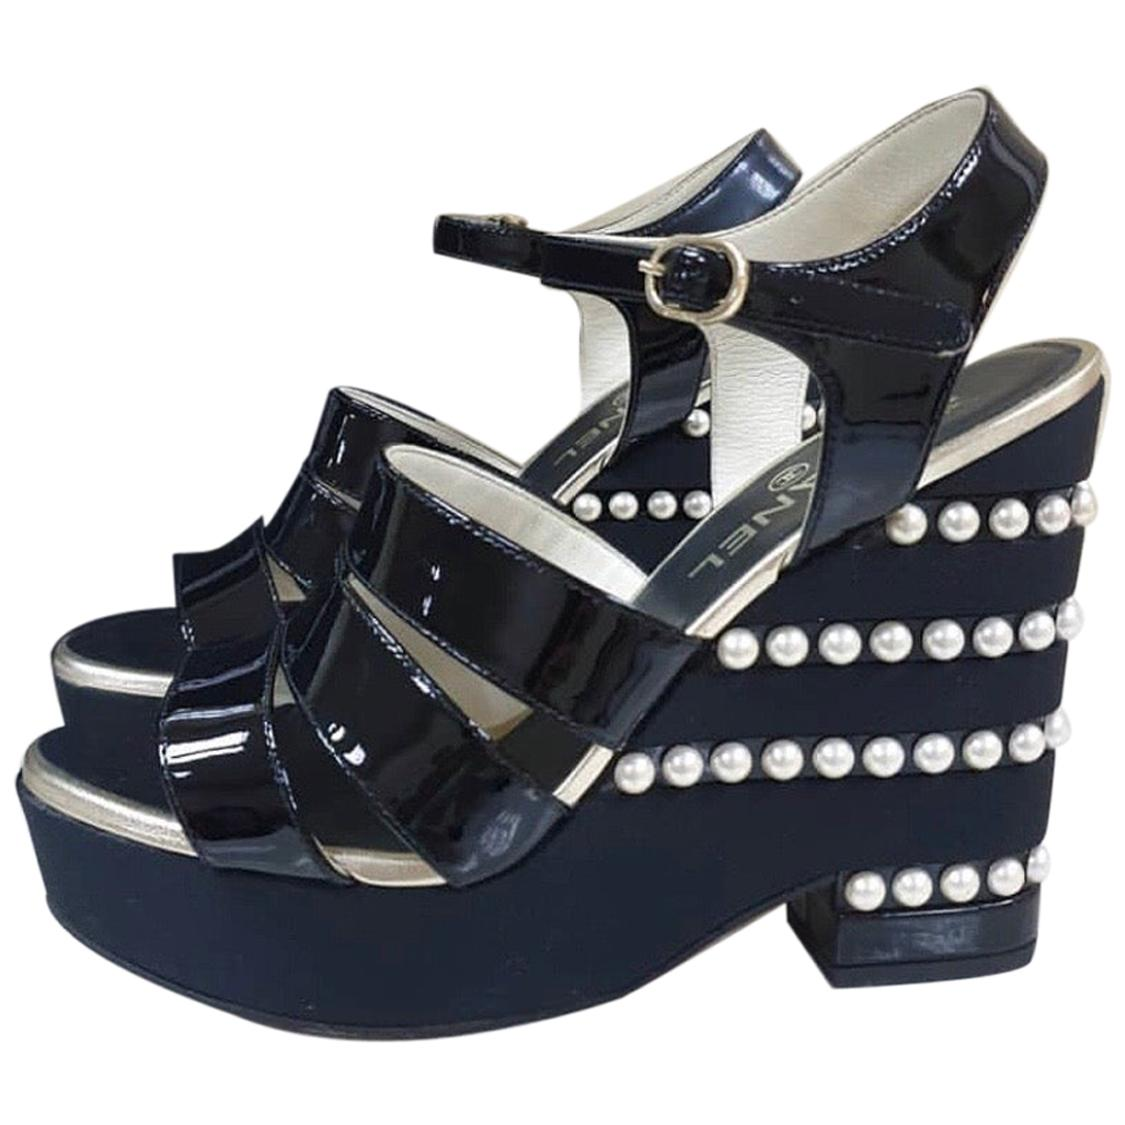 Chanel Black Patent Leather Pearl Wedge